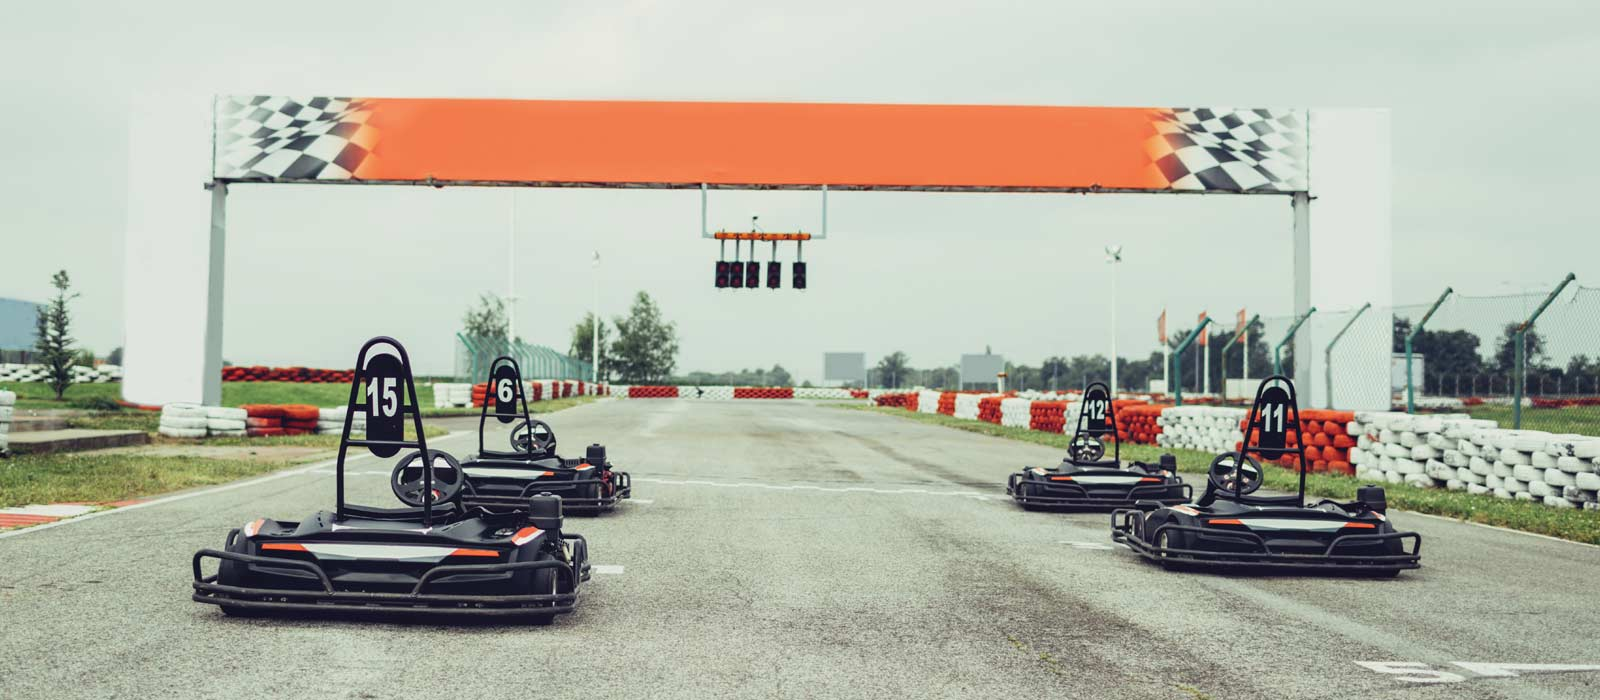 Go Karts lined up at racetrack near campus